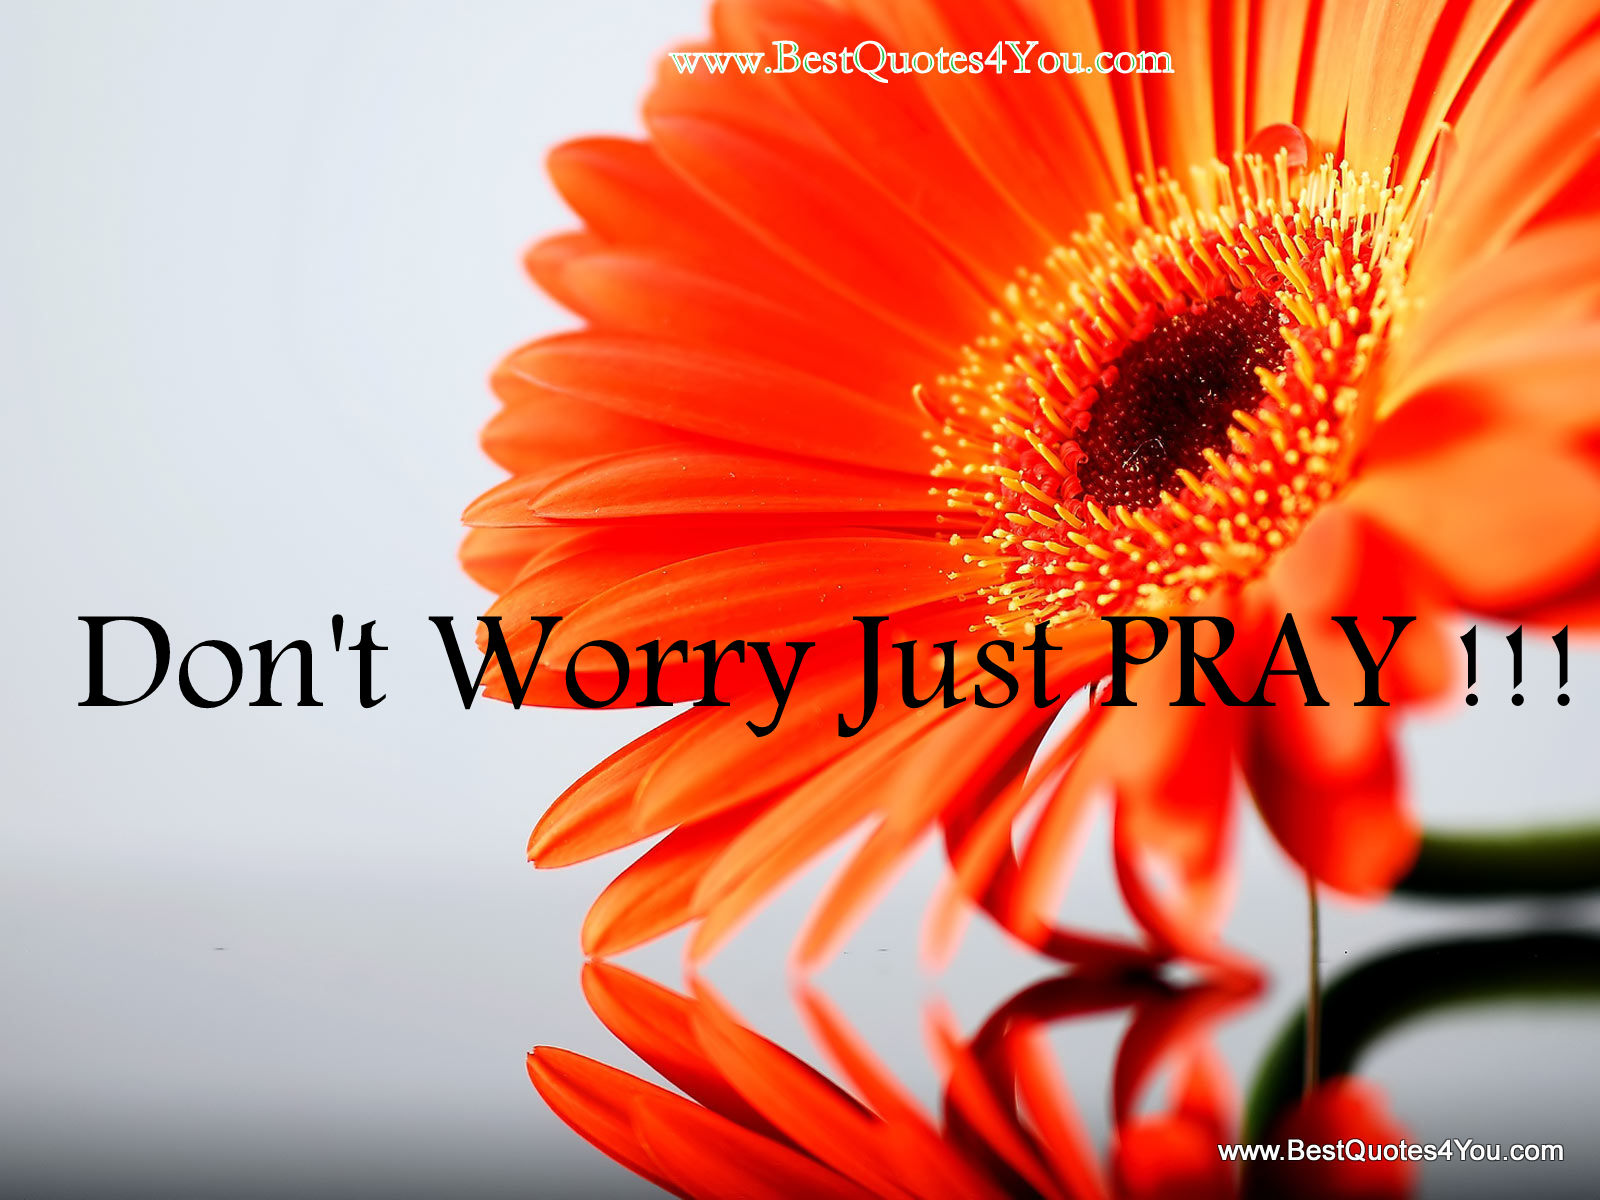 Don't Worry Just Pray!!!